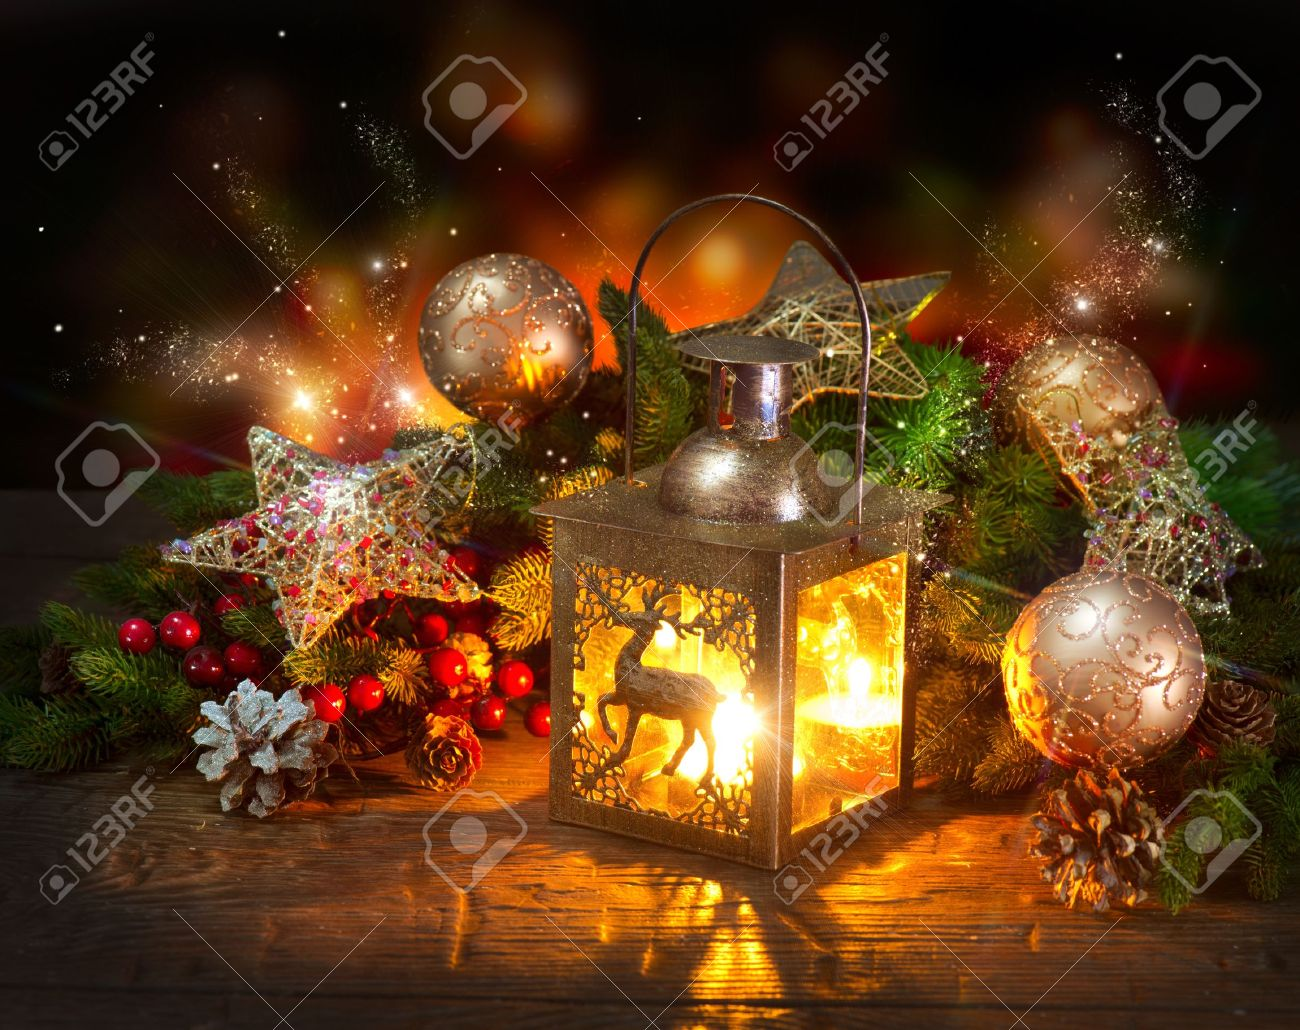 Christmas Scene Holiday Greeting Card Design Stock Photo Picture